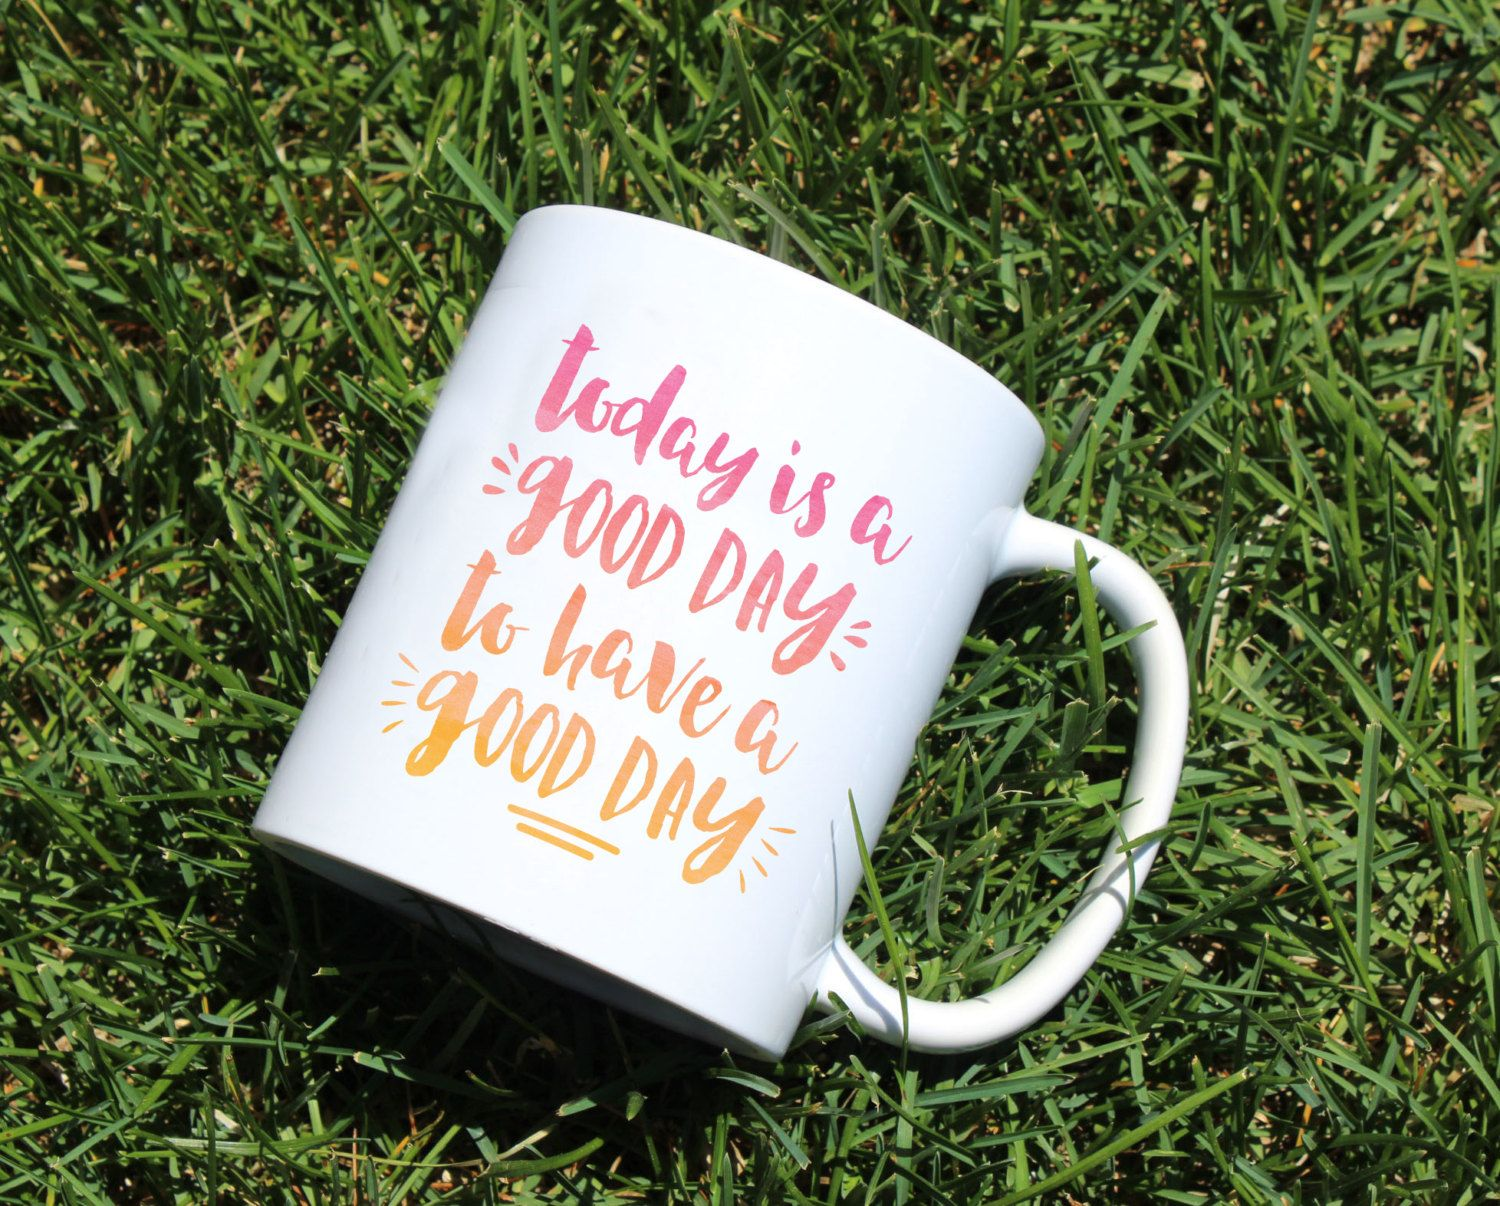 Today is a day to have a good day| quote mug | coffee mug | Fixer upper quote | good day | tea cup  | gift | typography by TwoLittleBirdsDS on Etsy